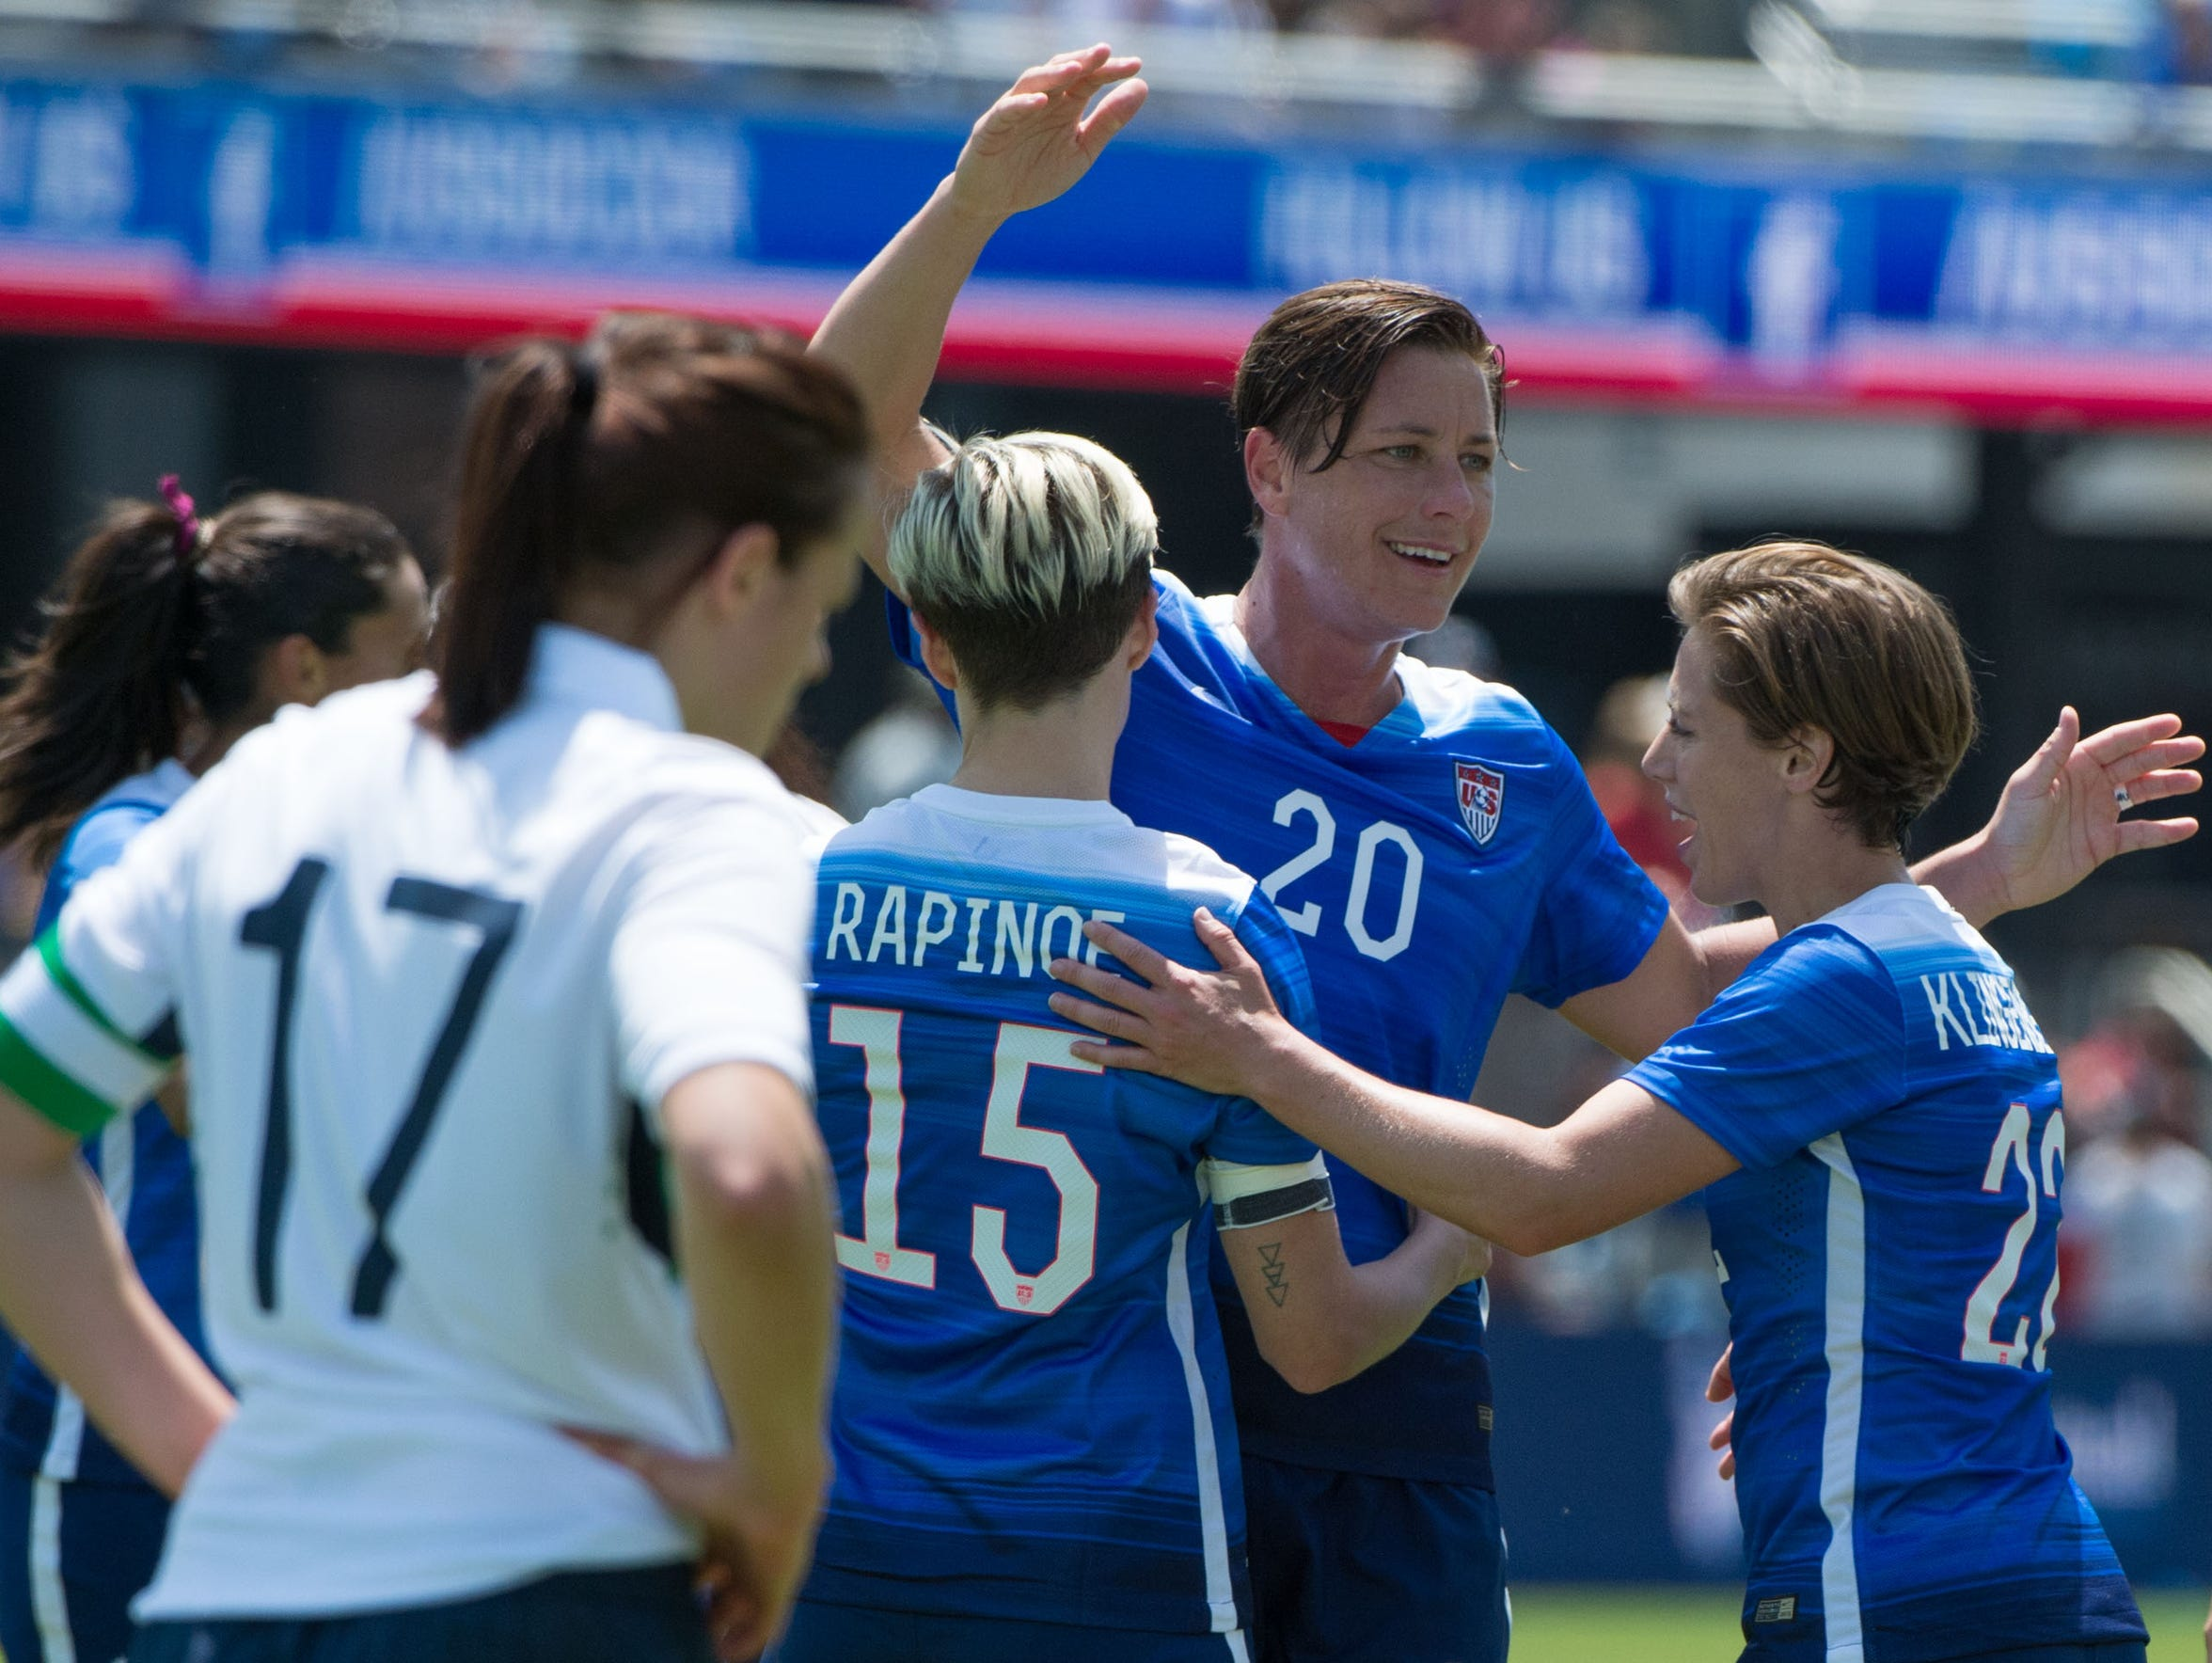 Abby Wambach (20) is congratulated for scoring a goal